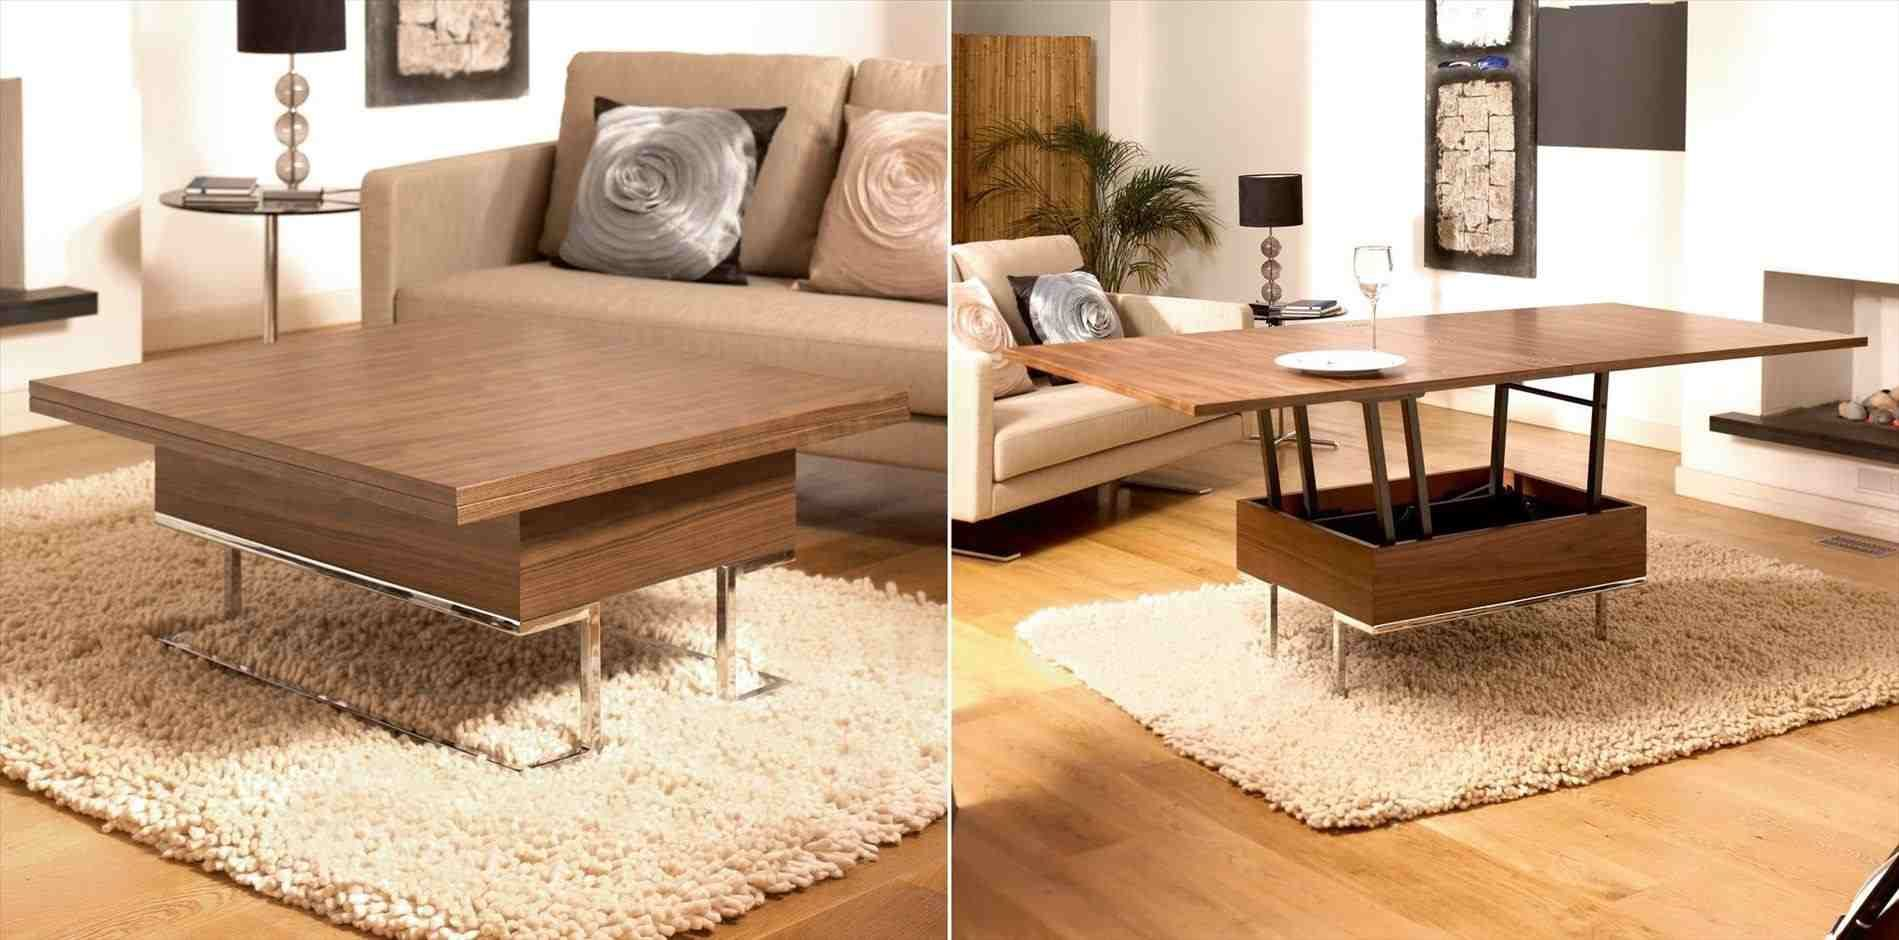 Adjustable Height Coffee Table For Sale Topic Related To Glass Display Case End Table S Coffee Table Convert To Dining Table Coffee Table Dining Table Rustic